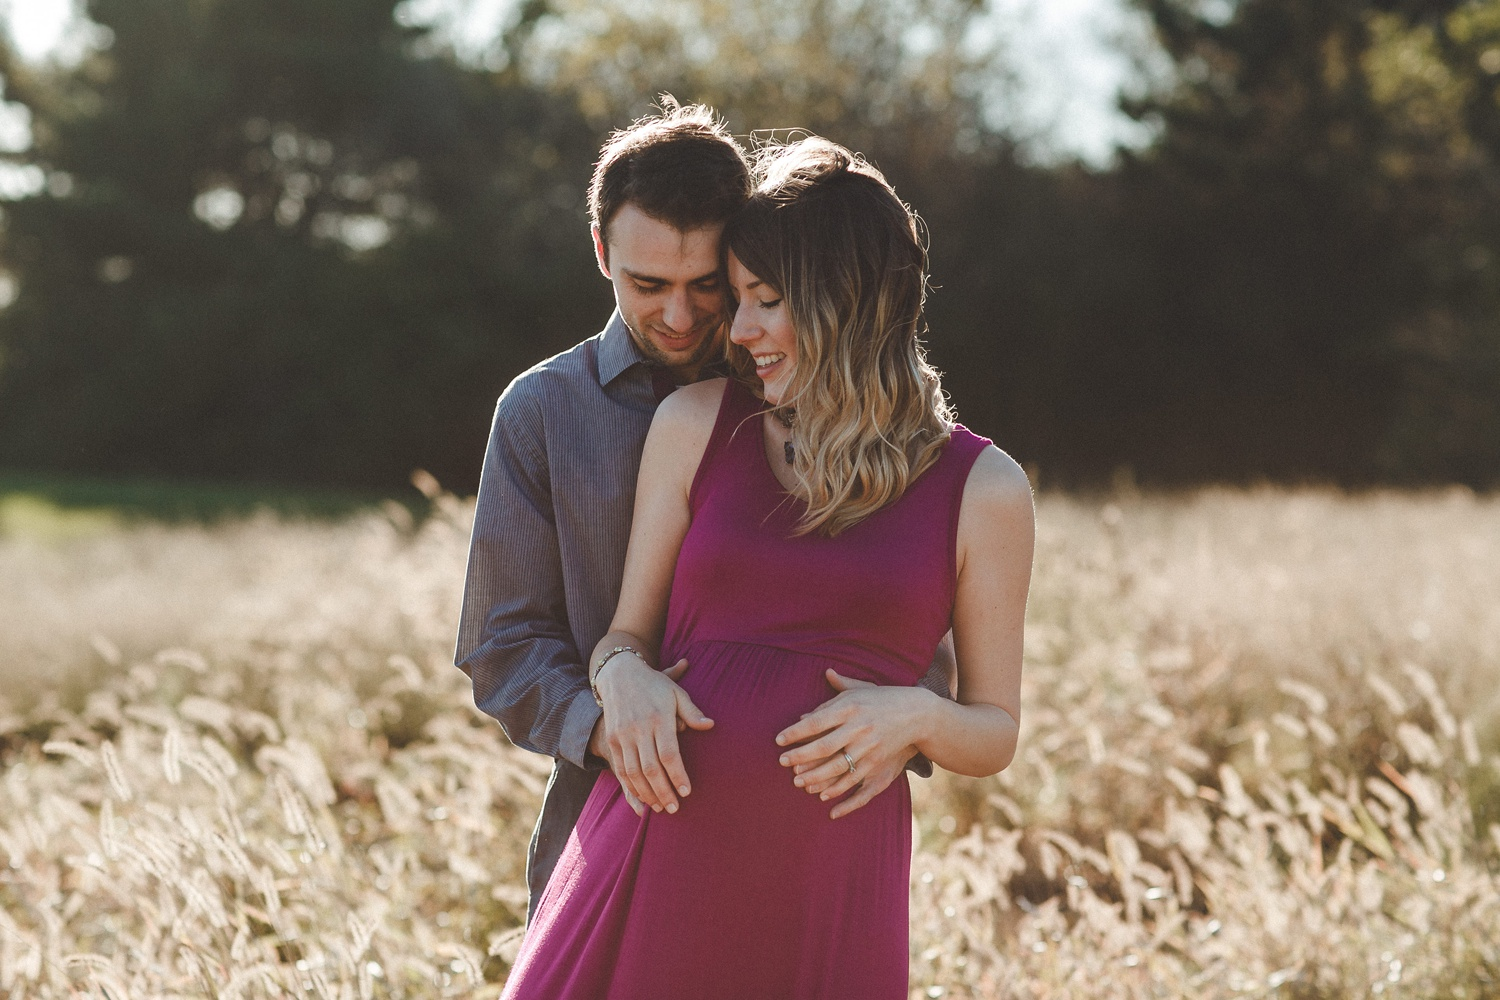 dekalb_IL_maternity_portrait_photographer_0004.jpg